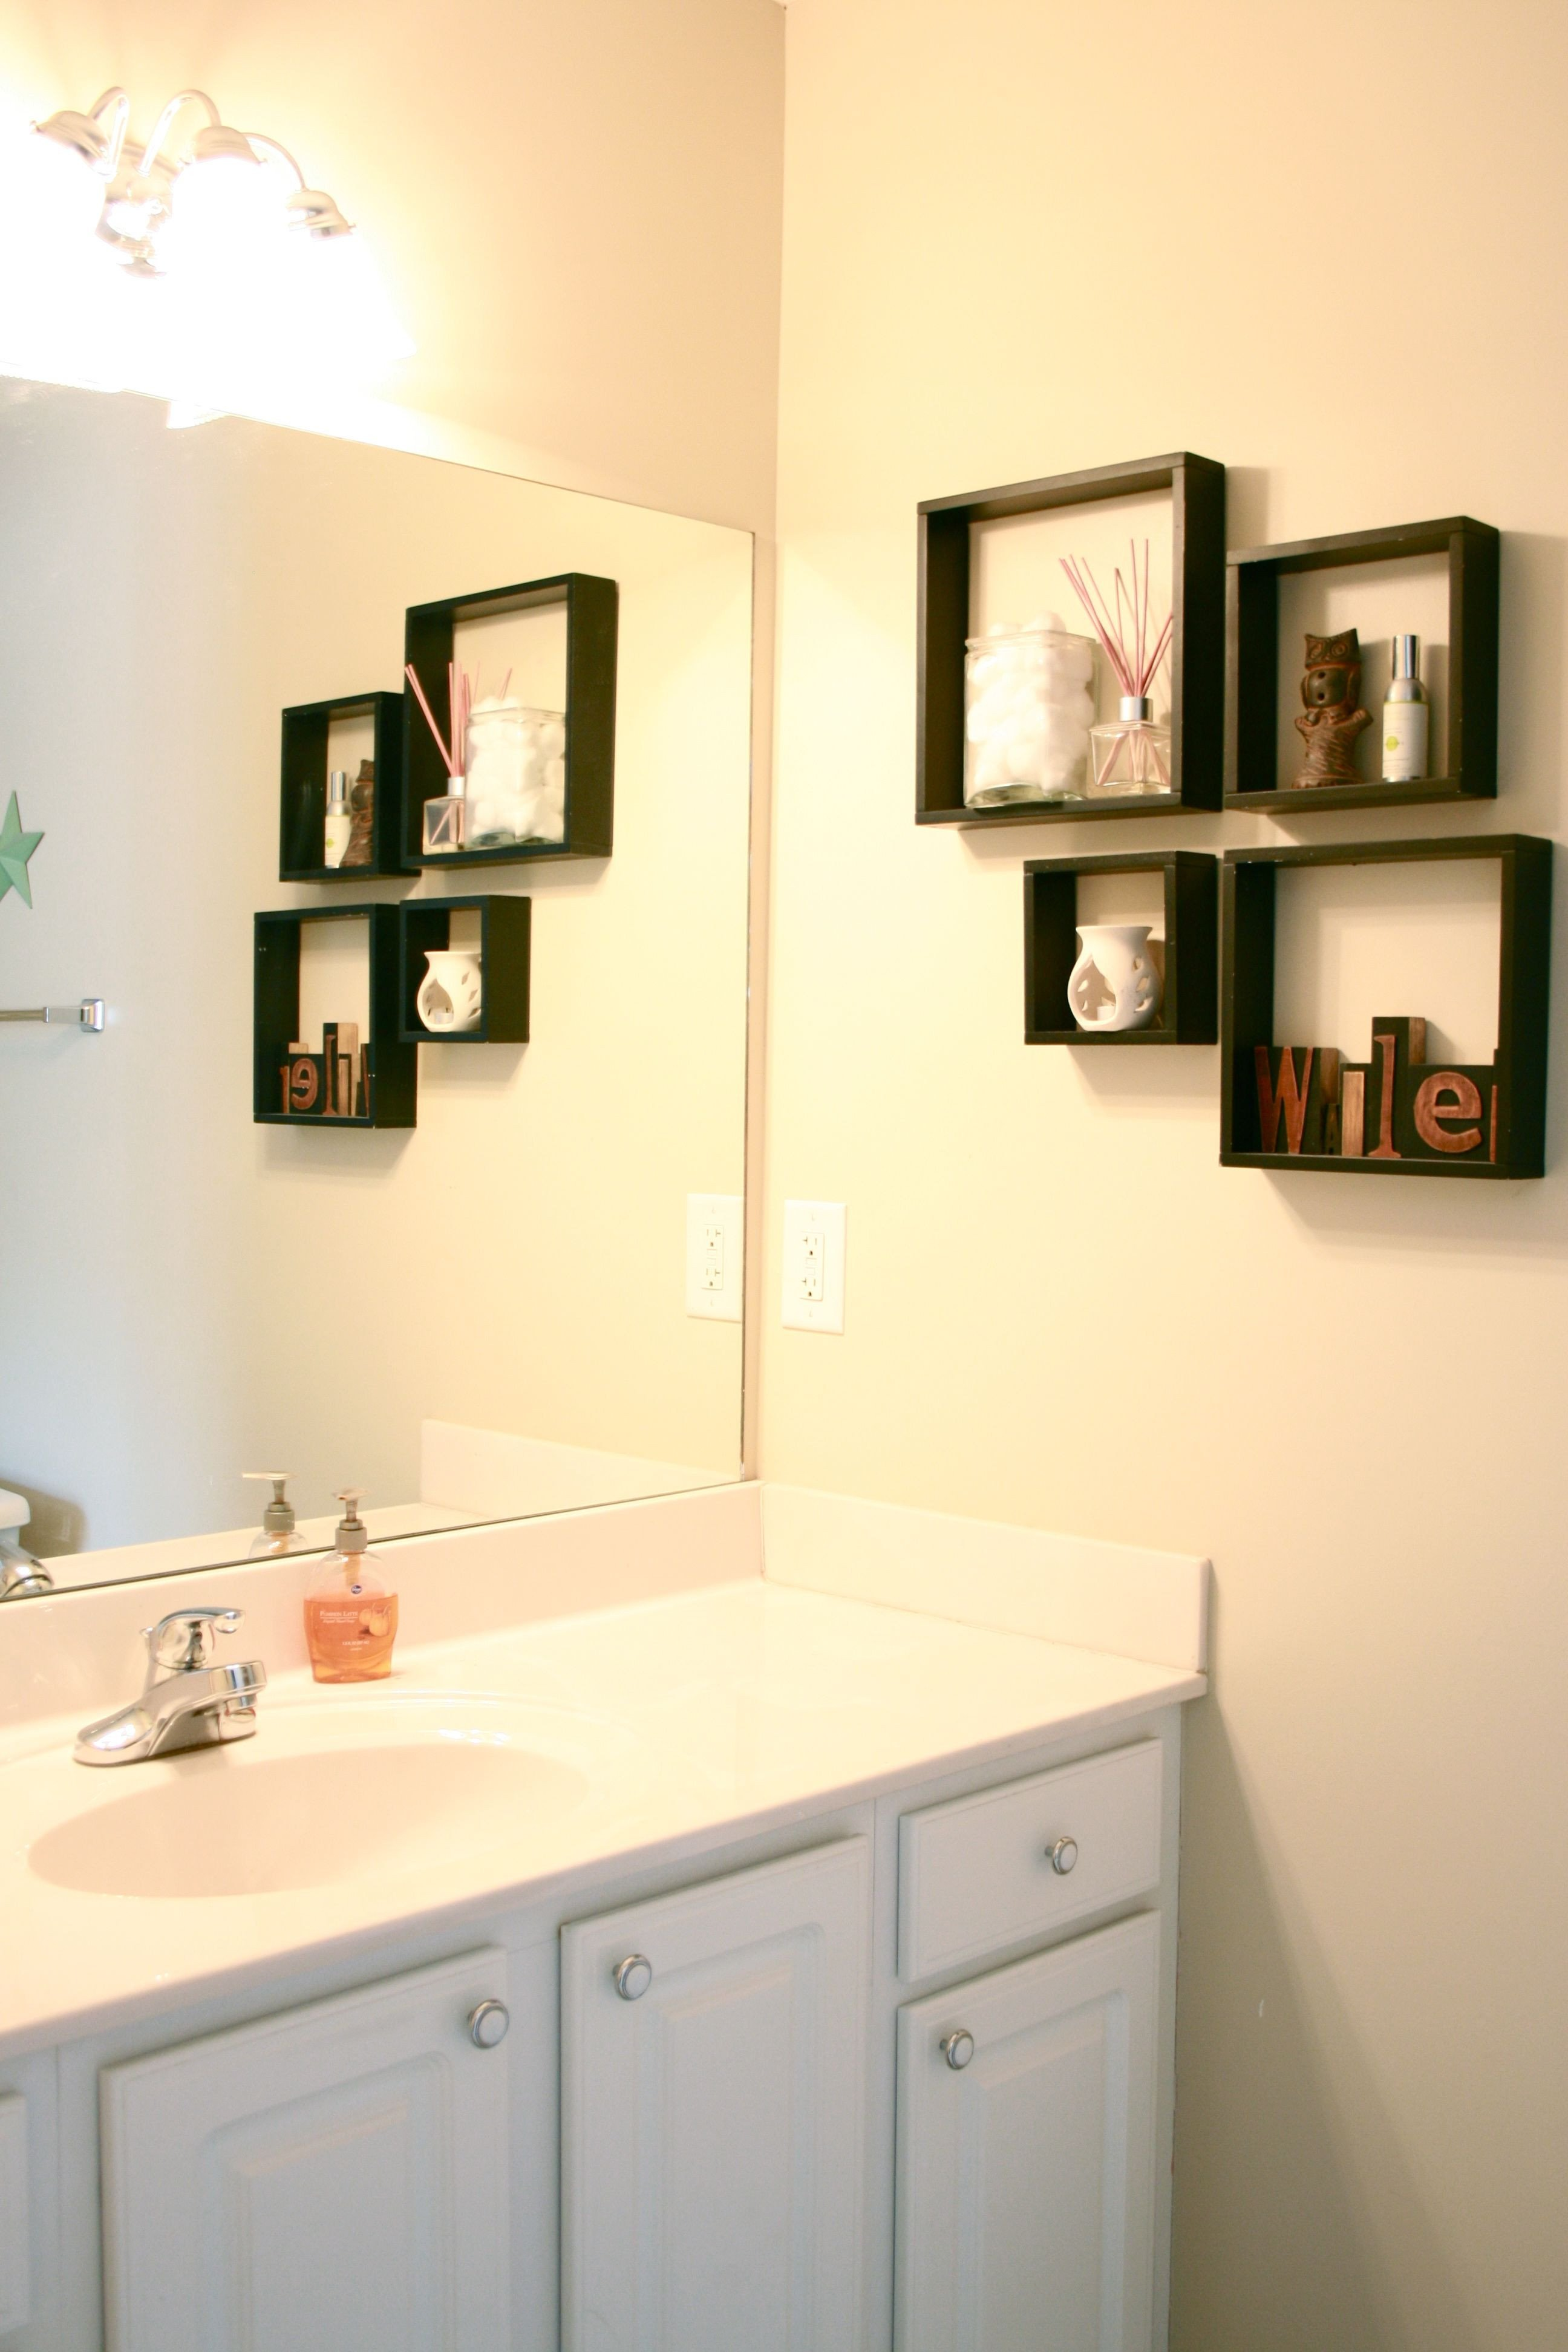 Pictures for Bathroom Wall Decor Lovely Chic Bathroom Wall Shelving Ideas for Cleaner Bathroom Interior